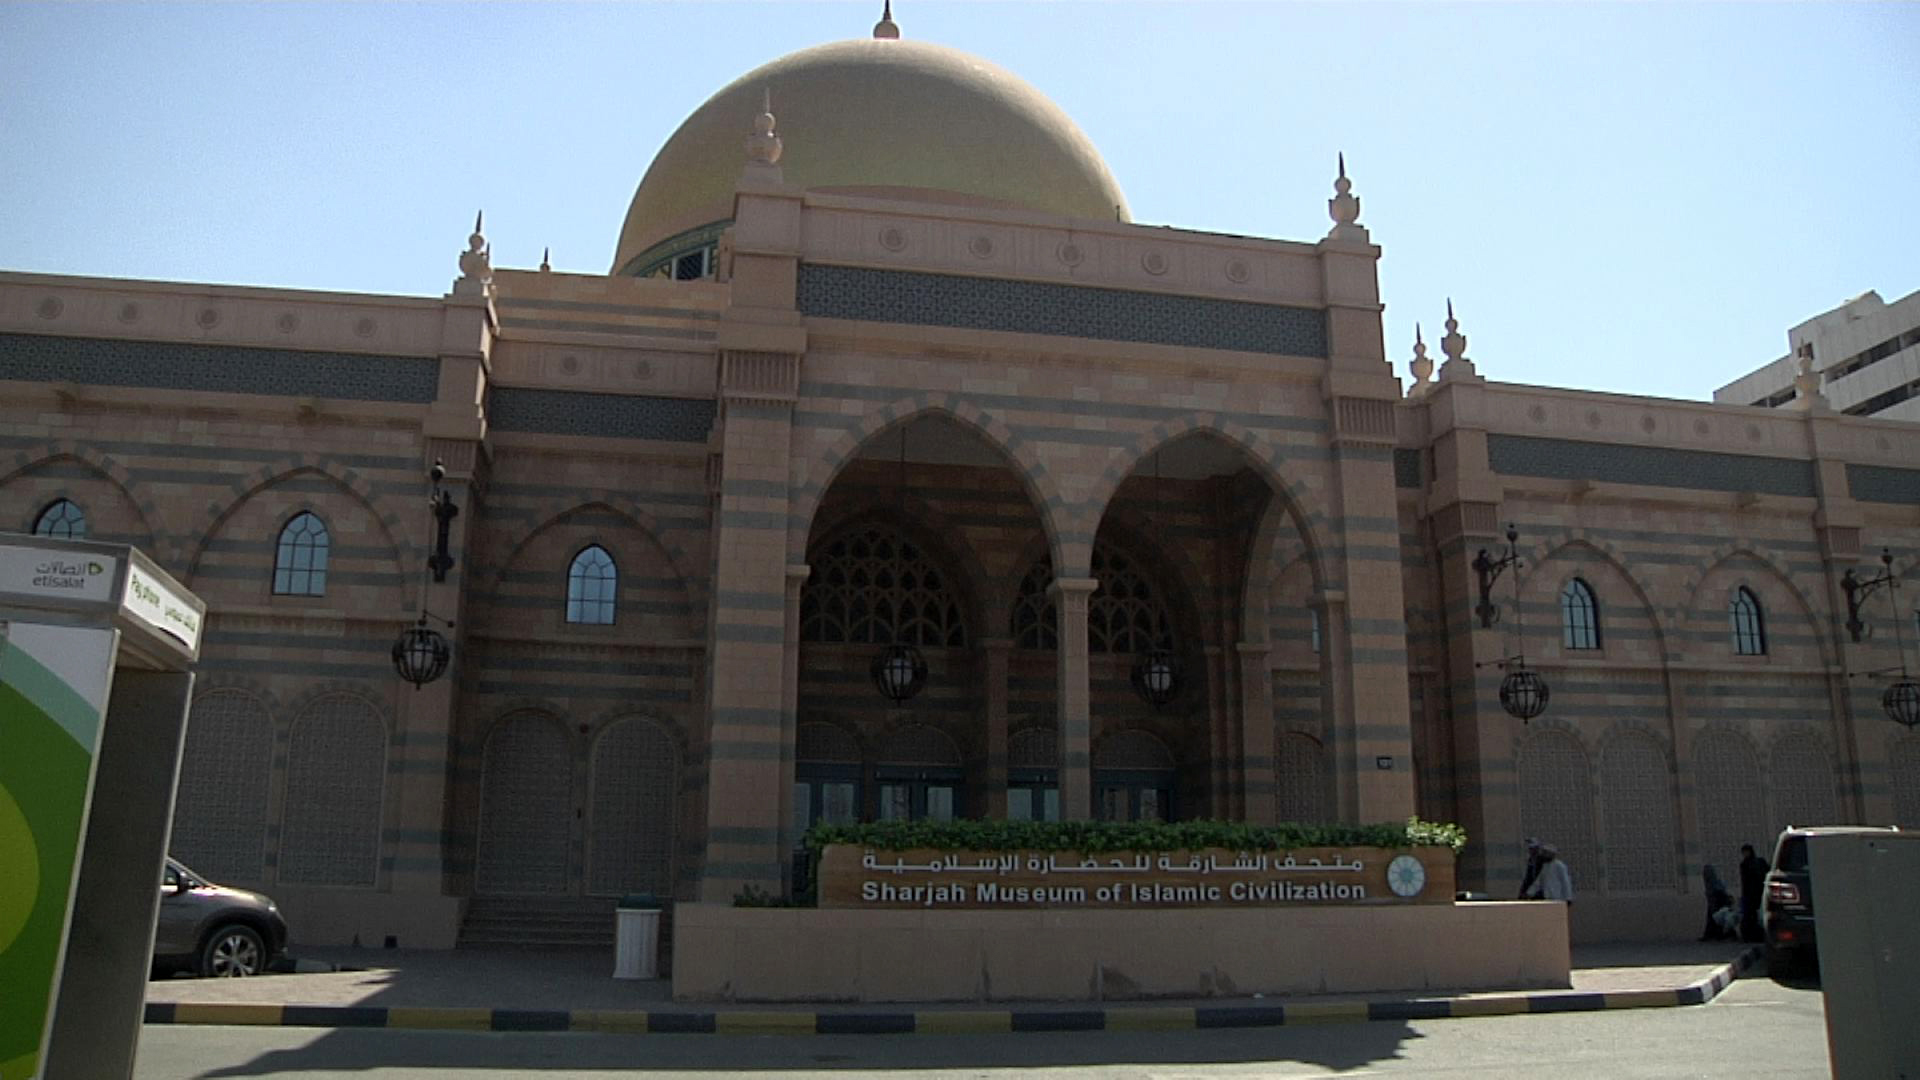 Video - Sharjah Museum of Islamic Civilization